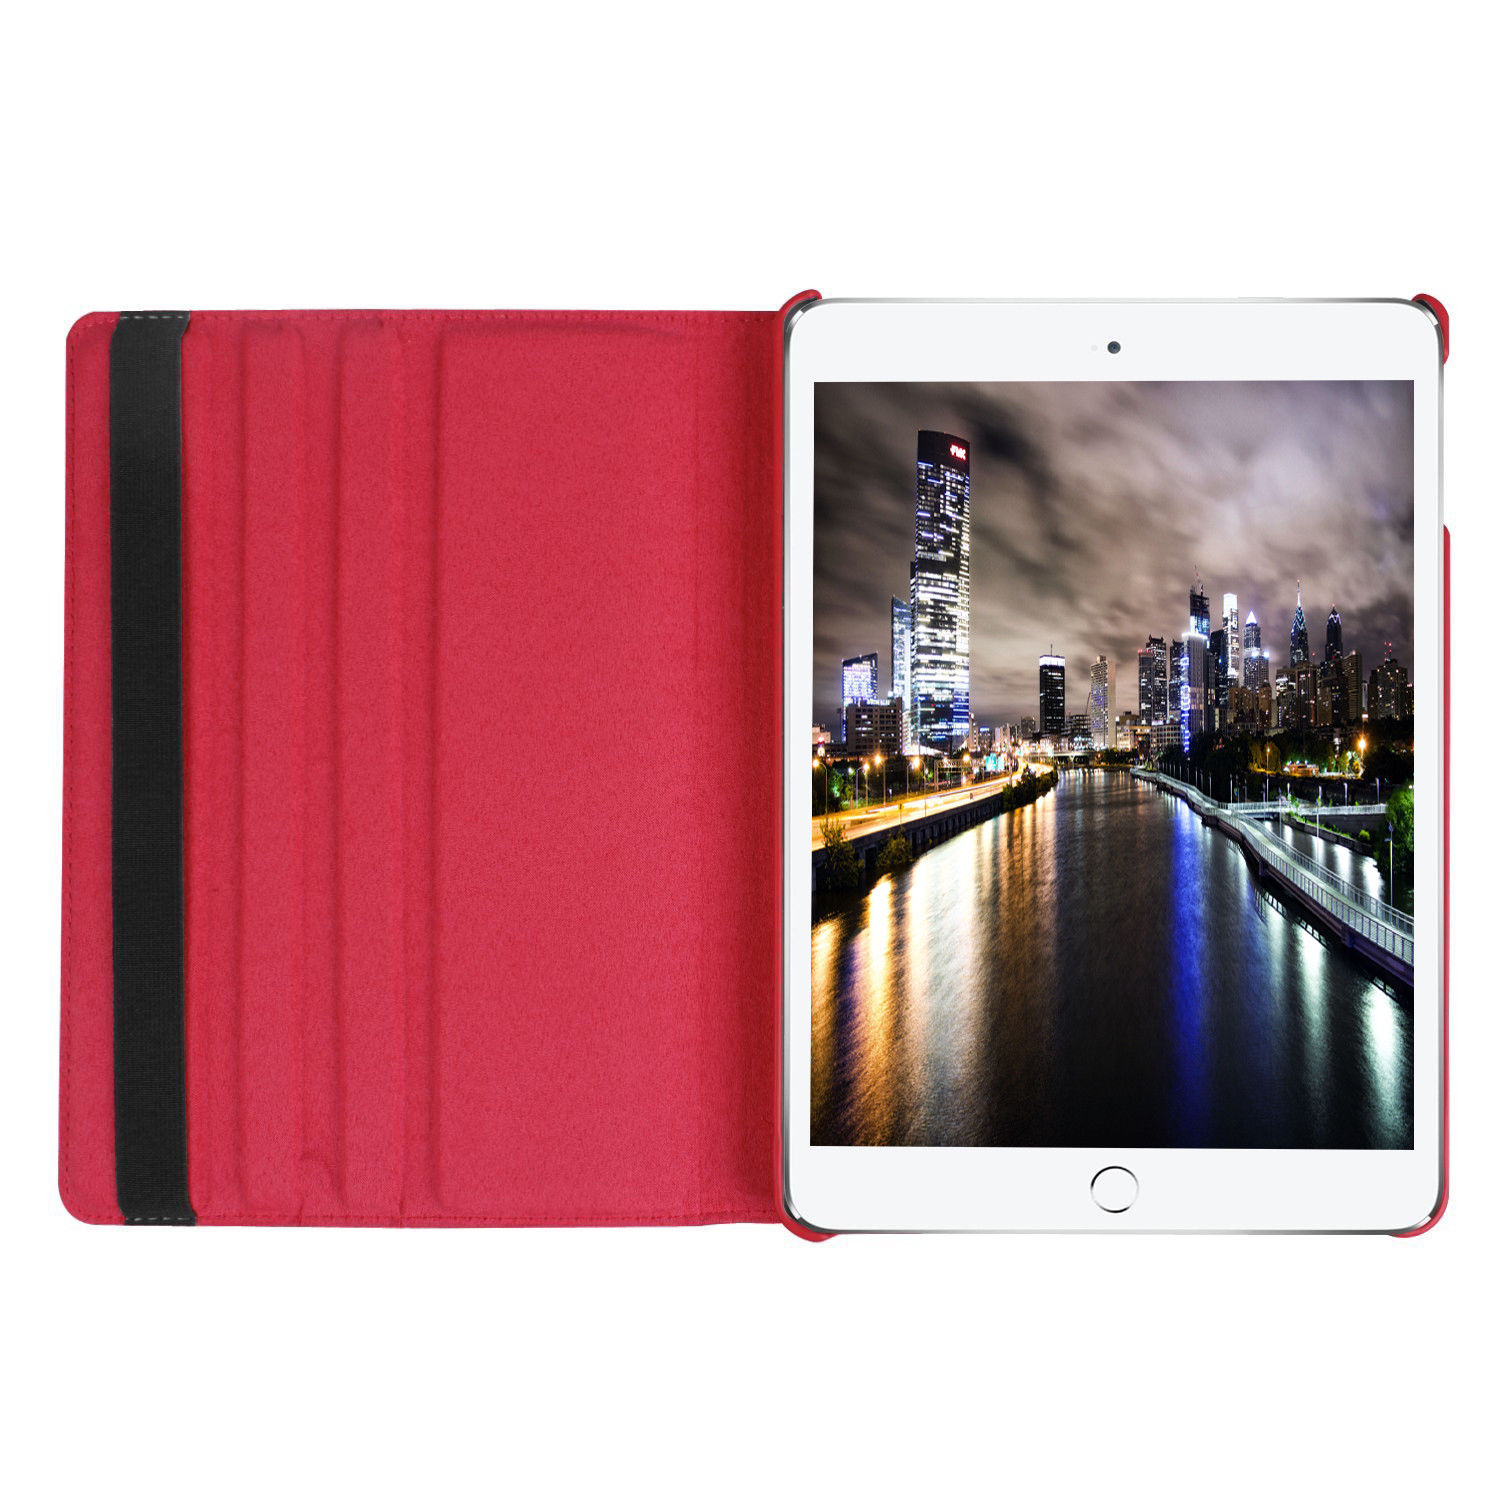 Custodia-per-Apple-iPad-Pro-2017-iPad-Air-3-10-5-Smart-Cover-Case-Custodia-Protettiva miniatura 27